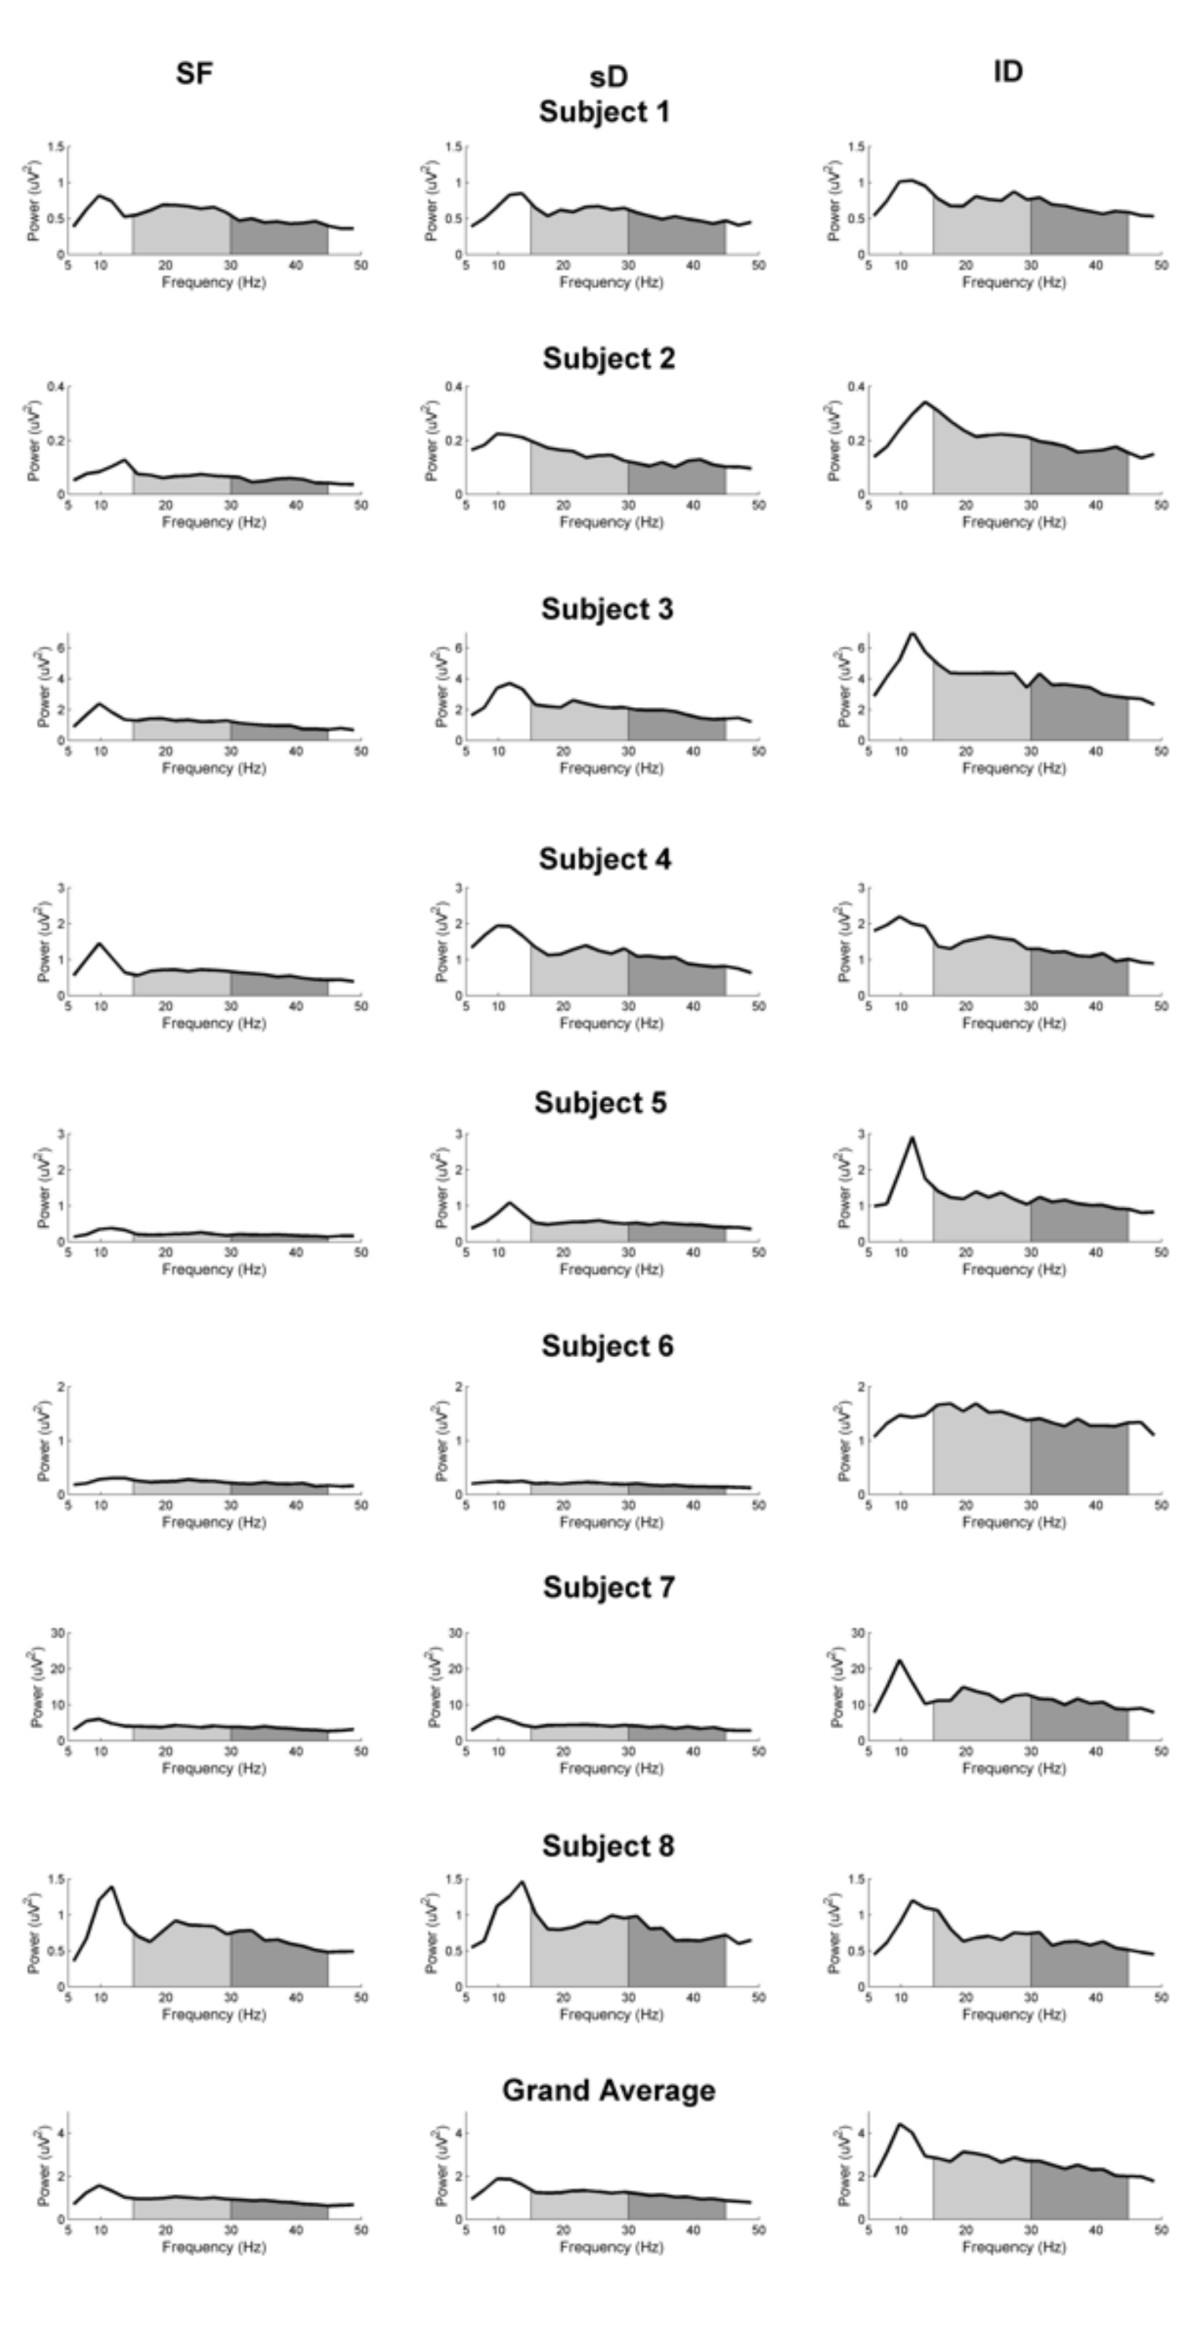 http://static-content.springer.com/image/art%3A10.1186%2F1471-2202-8-101/MediaObjects/12868_2007_Article_399_Fig5_HTML.jpg